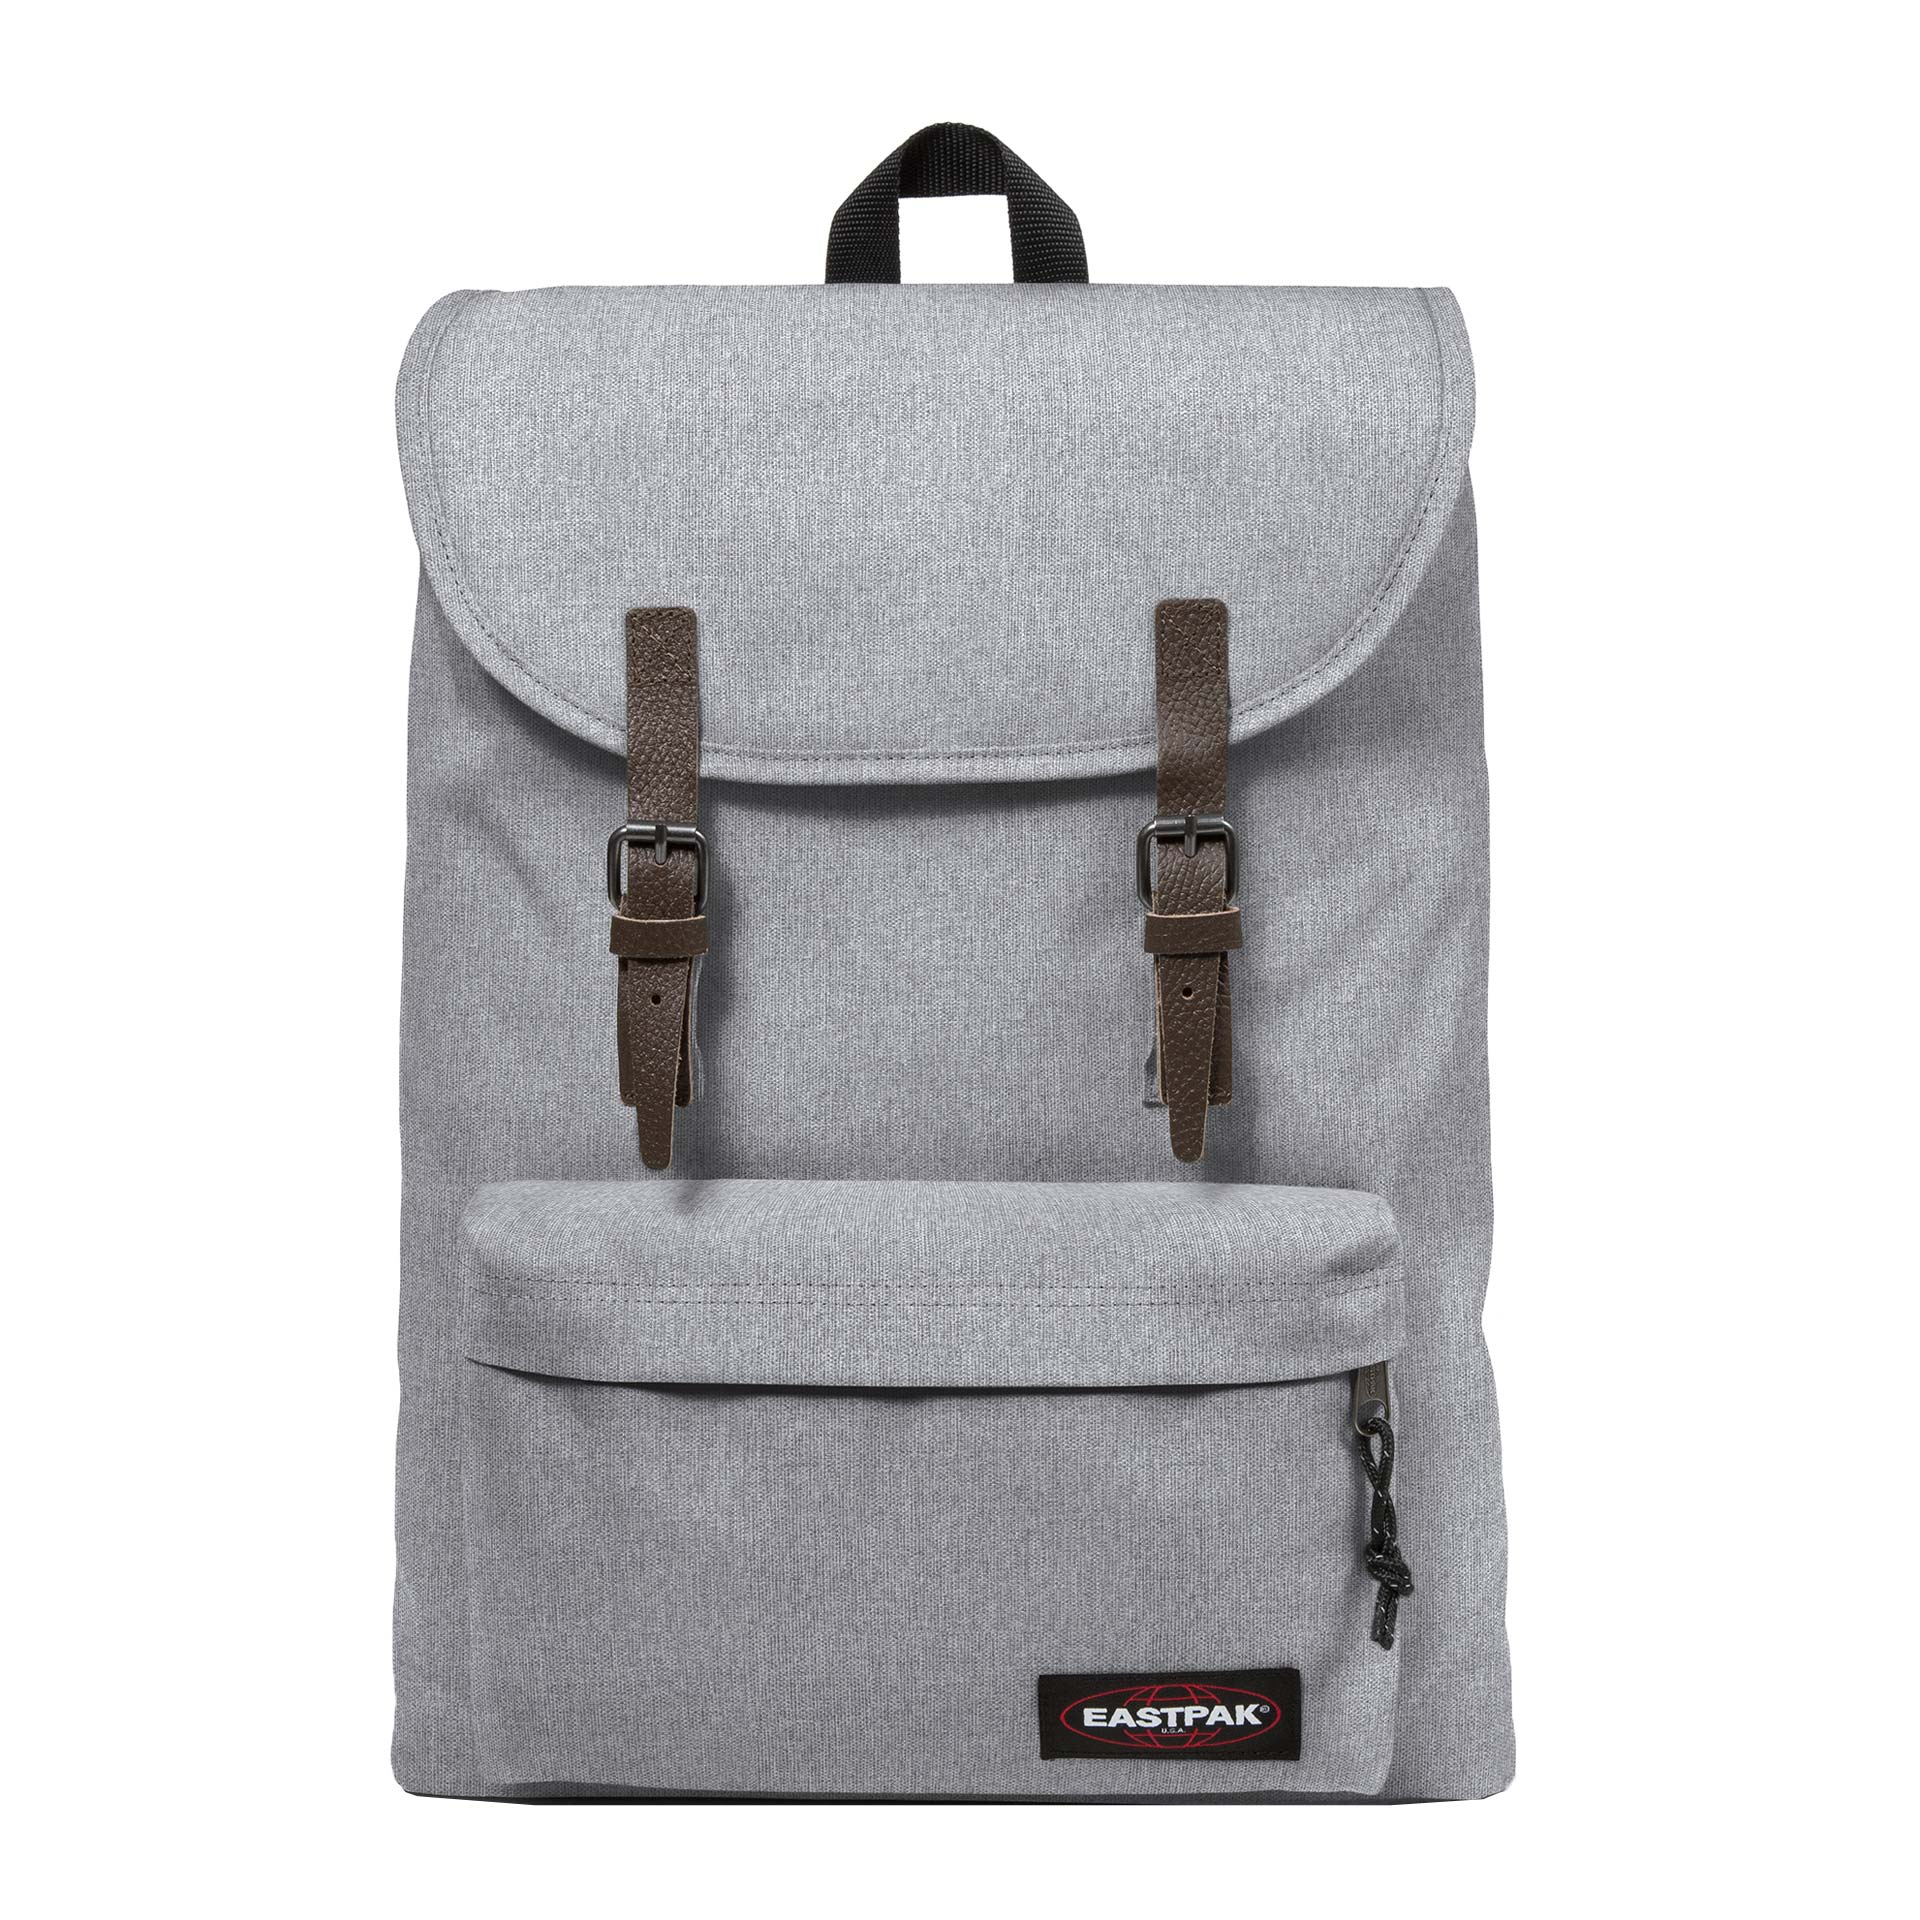 Eastpak Selection London Rucksack sundaygrey